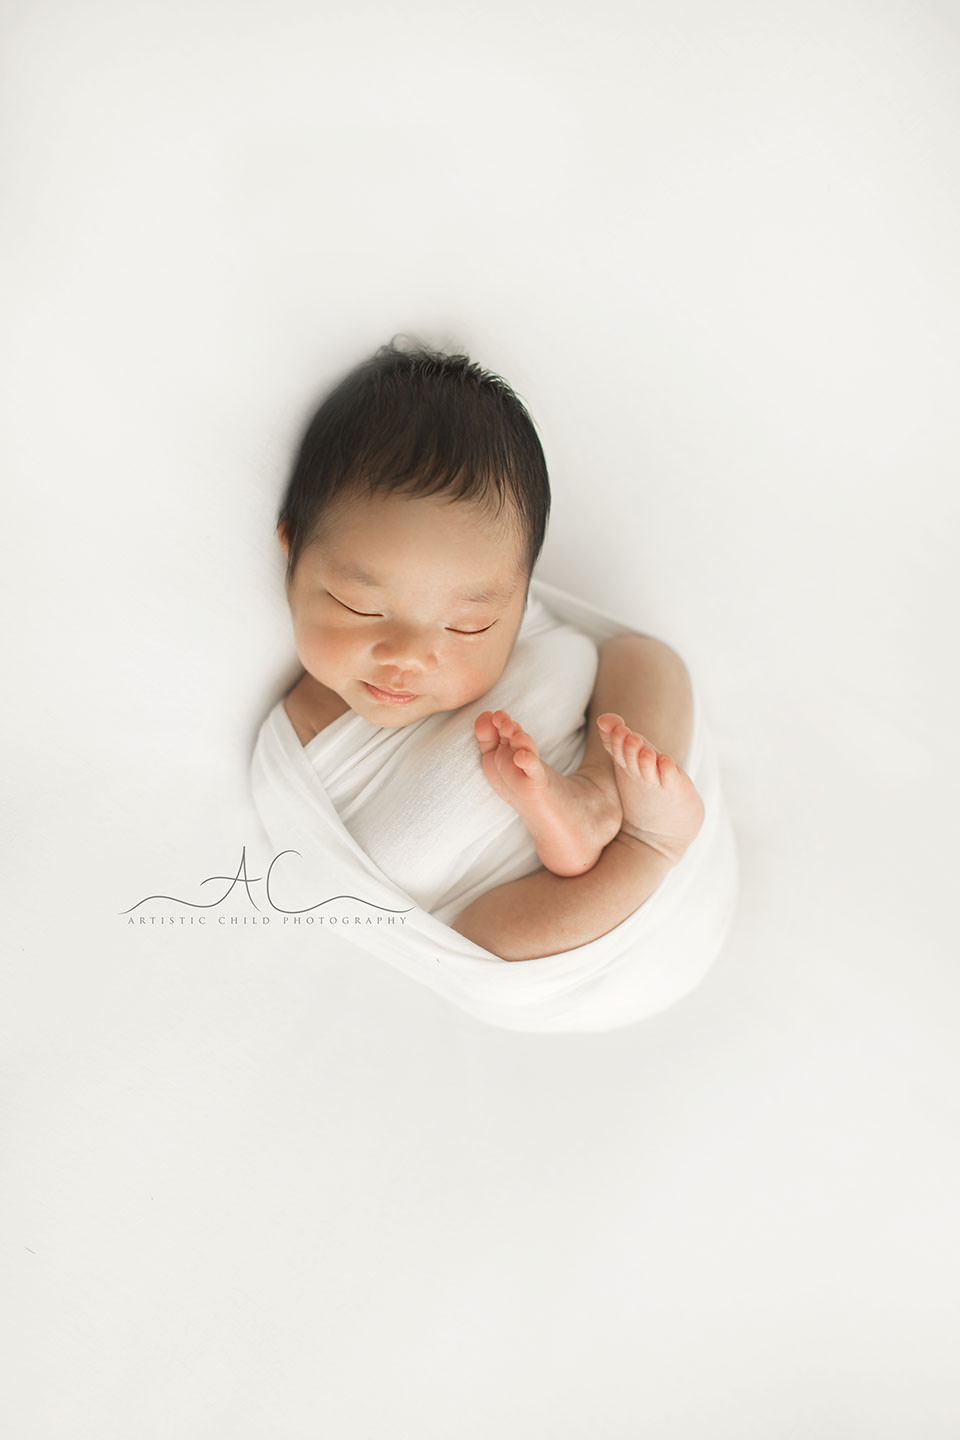 natural portrait of a newborn baby boy photographed on a white backdrop | London